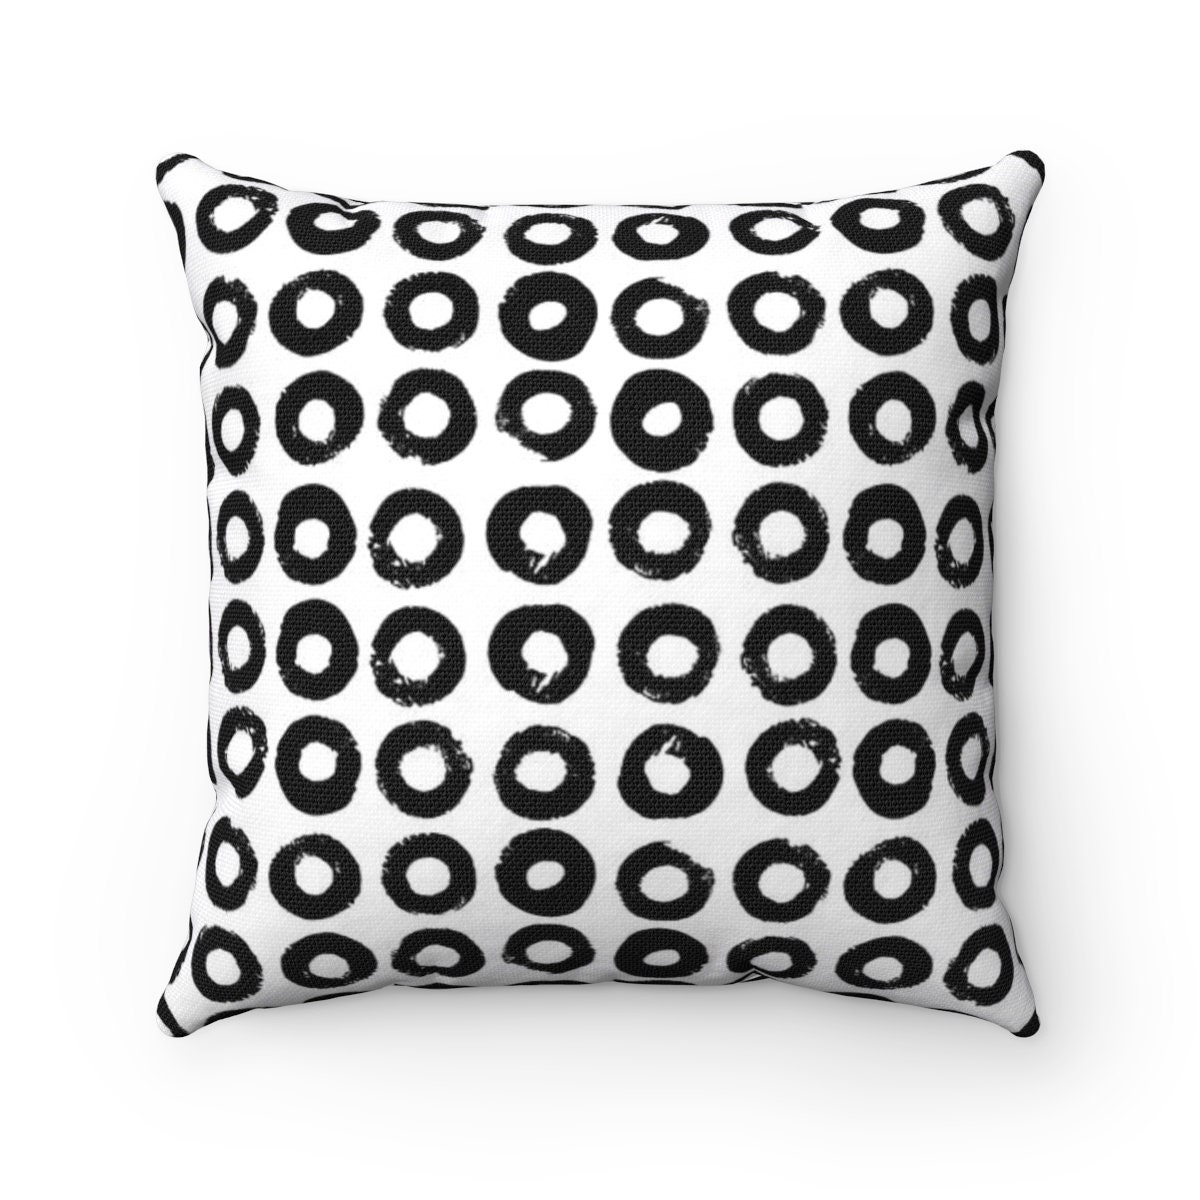 black and white throw pillow black white pillow modern cushion black lumbar pillow. Black Bedroom Furniture Sets. Home Design Ideas